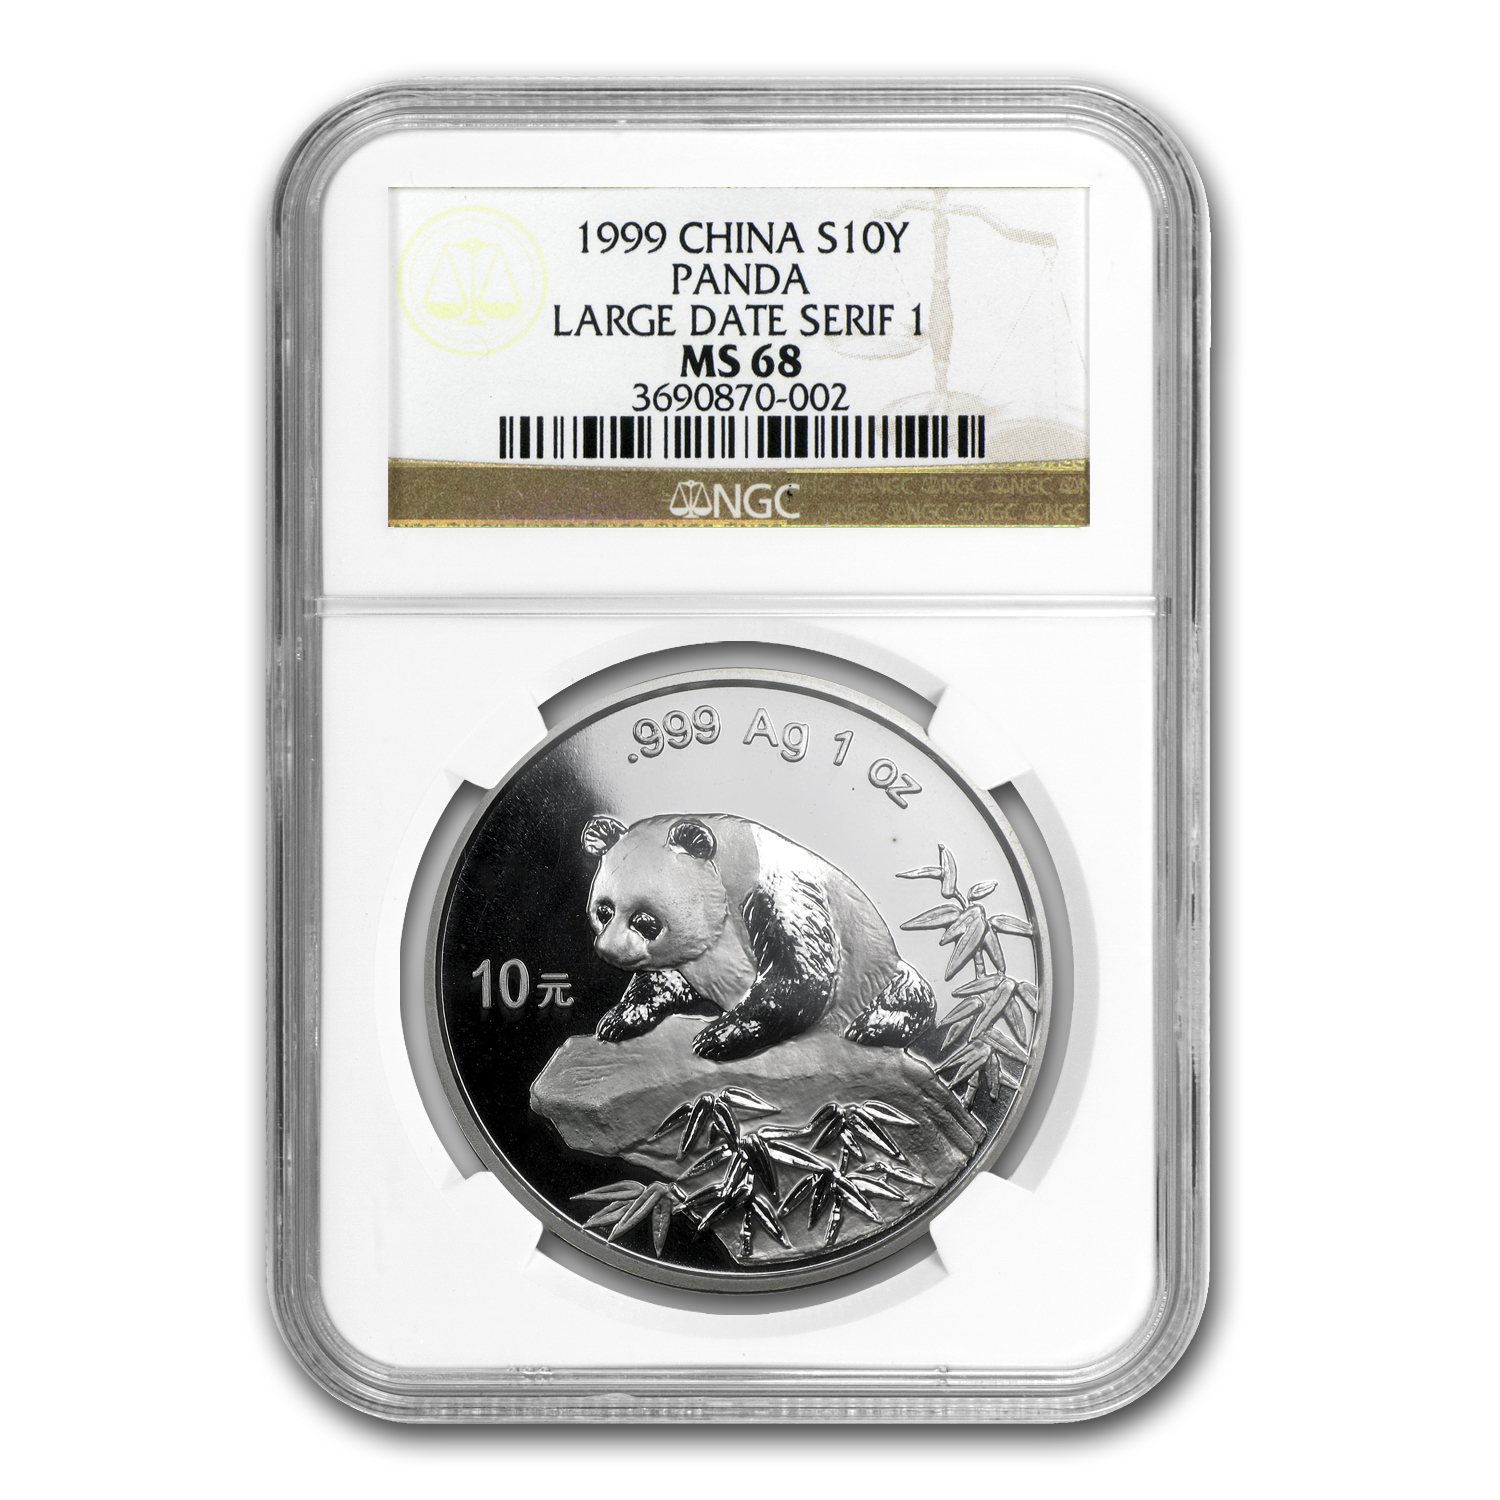 1999 China 1 oz Silver Panda MS-68 NGC (Large Date w/serif)